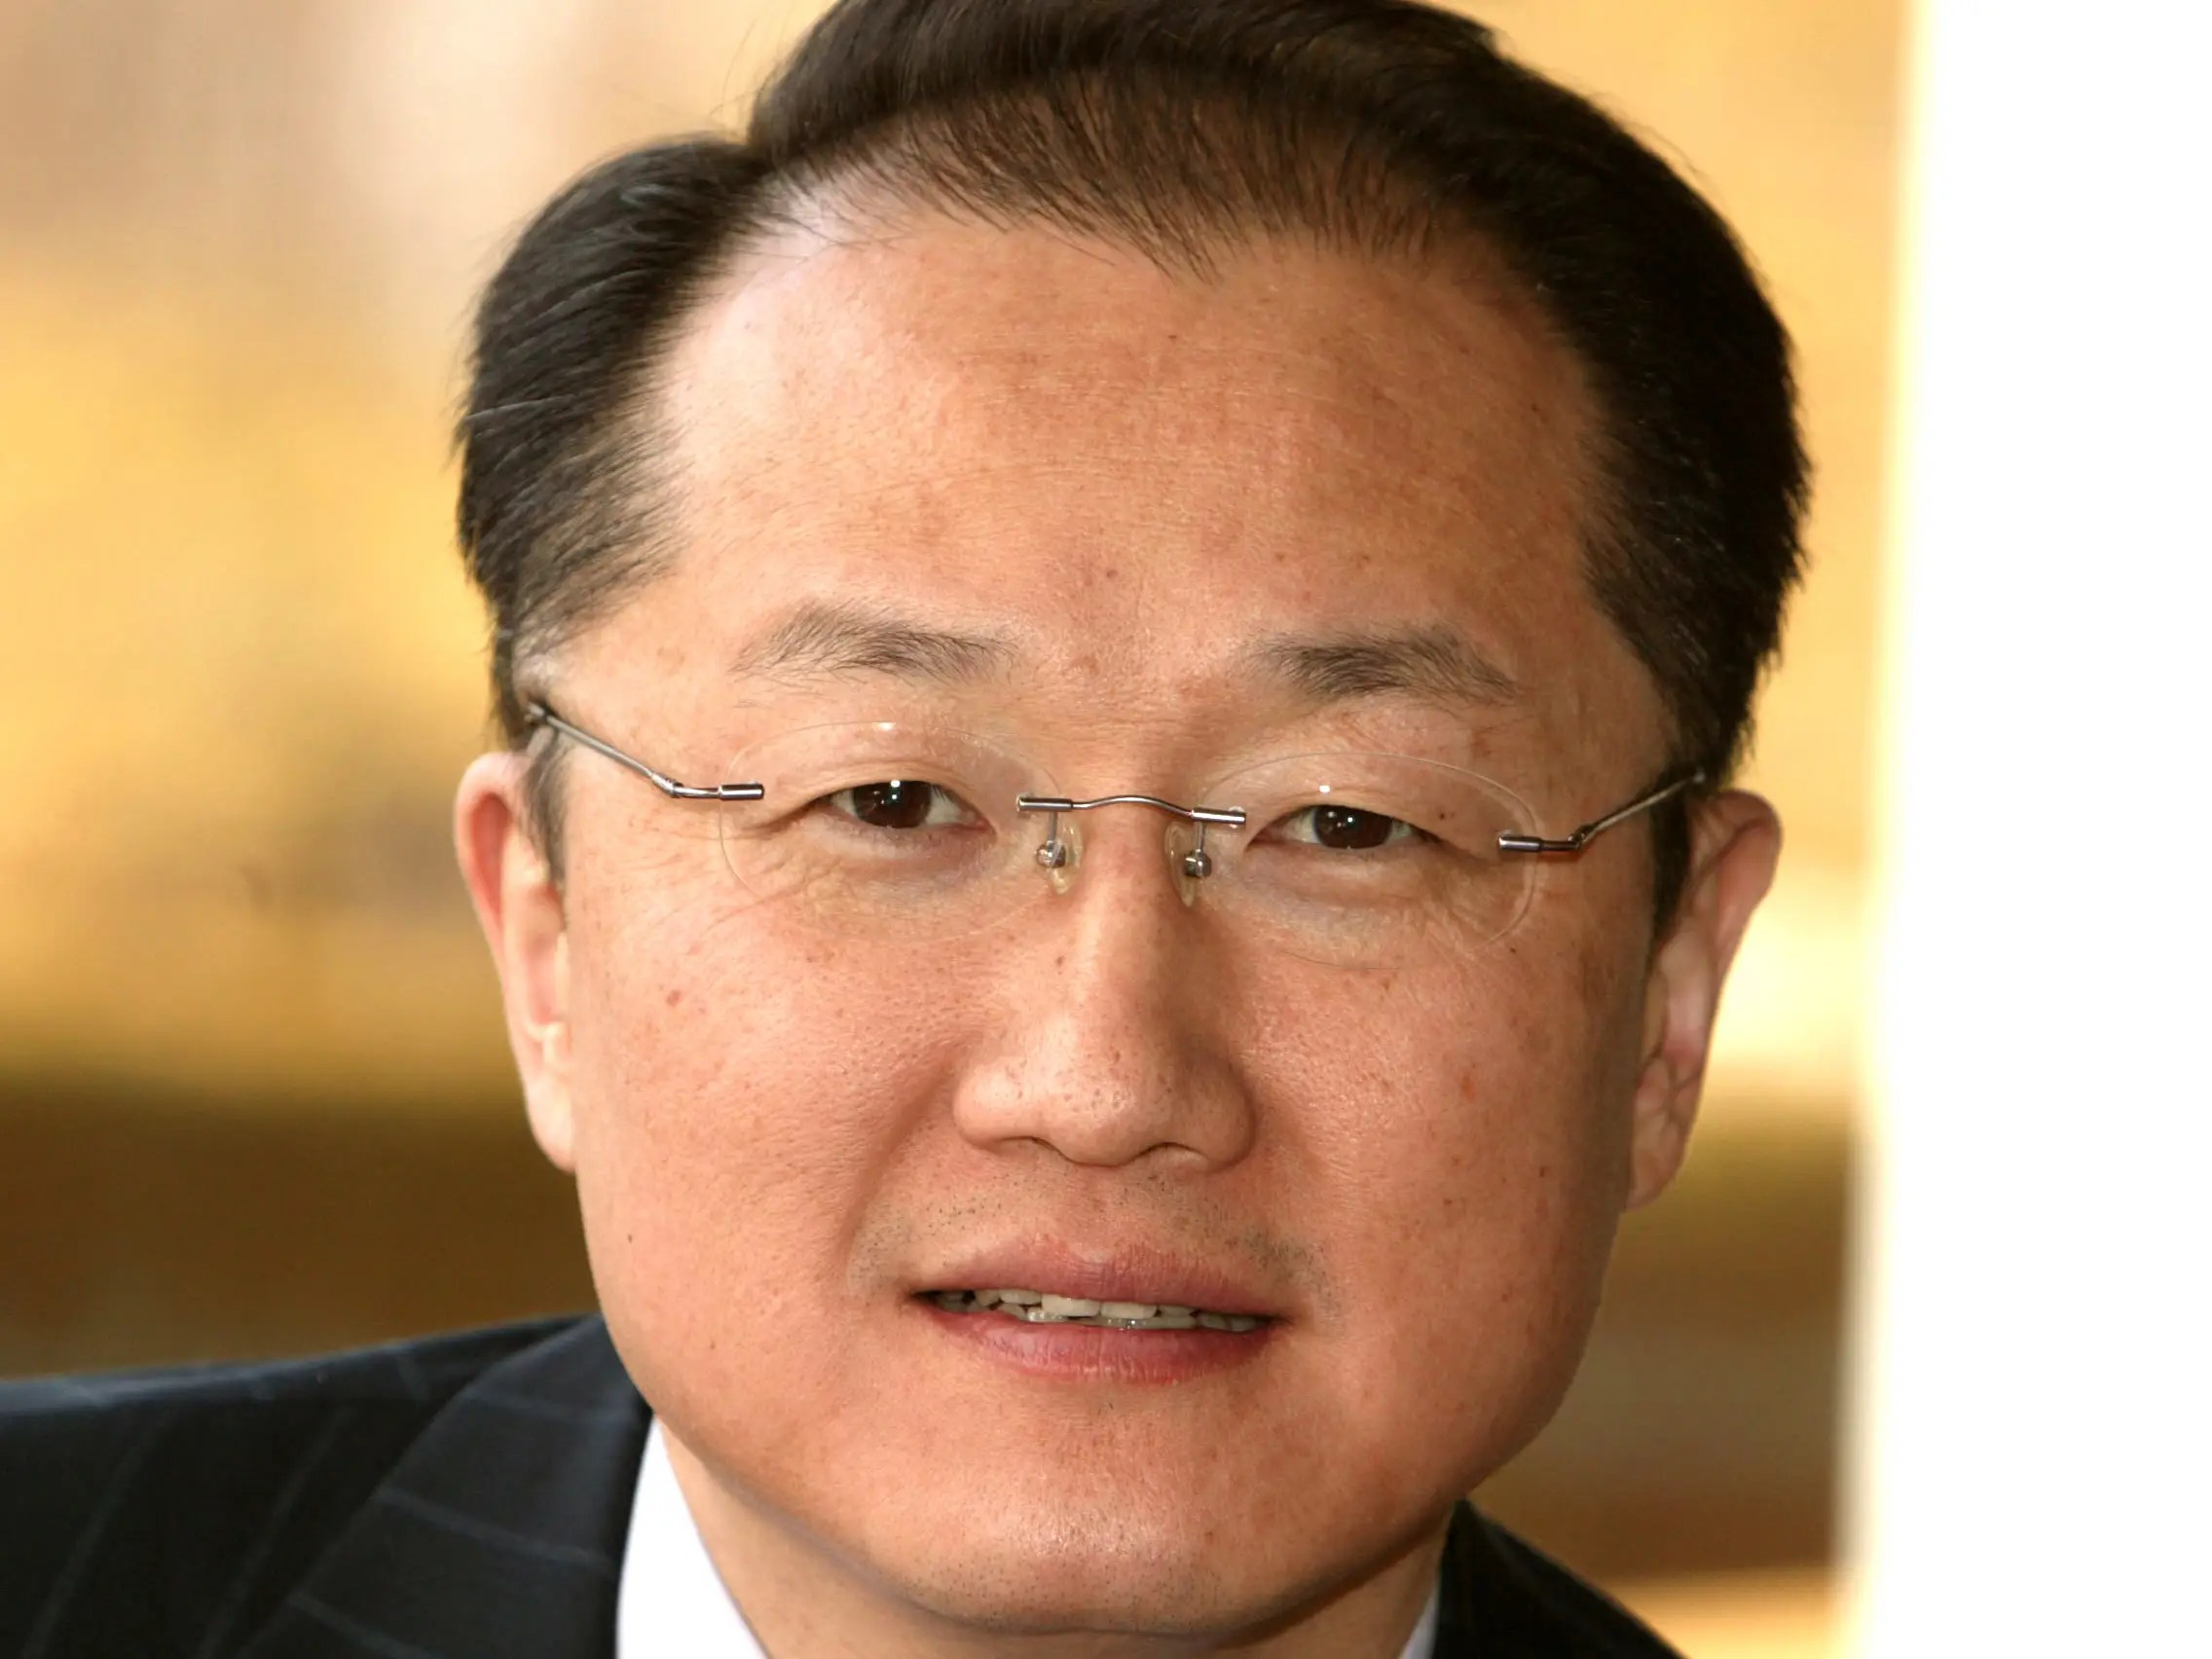 Jim Kim, President at The World Bank